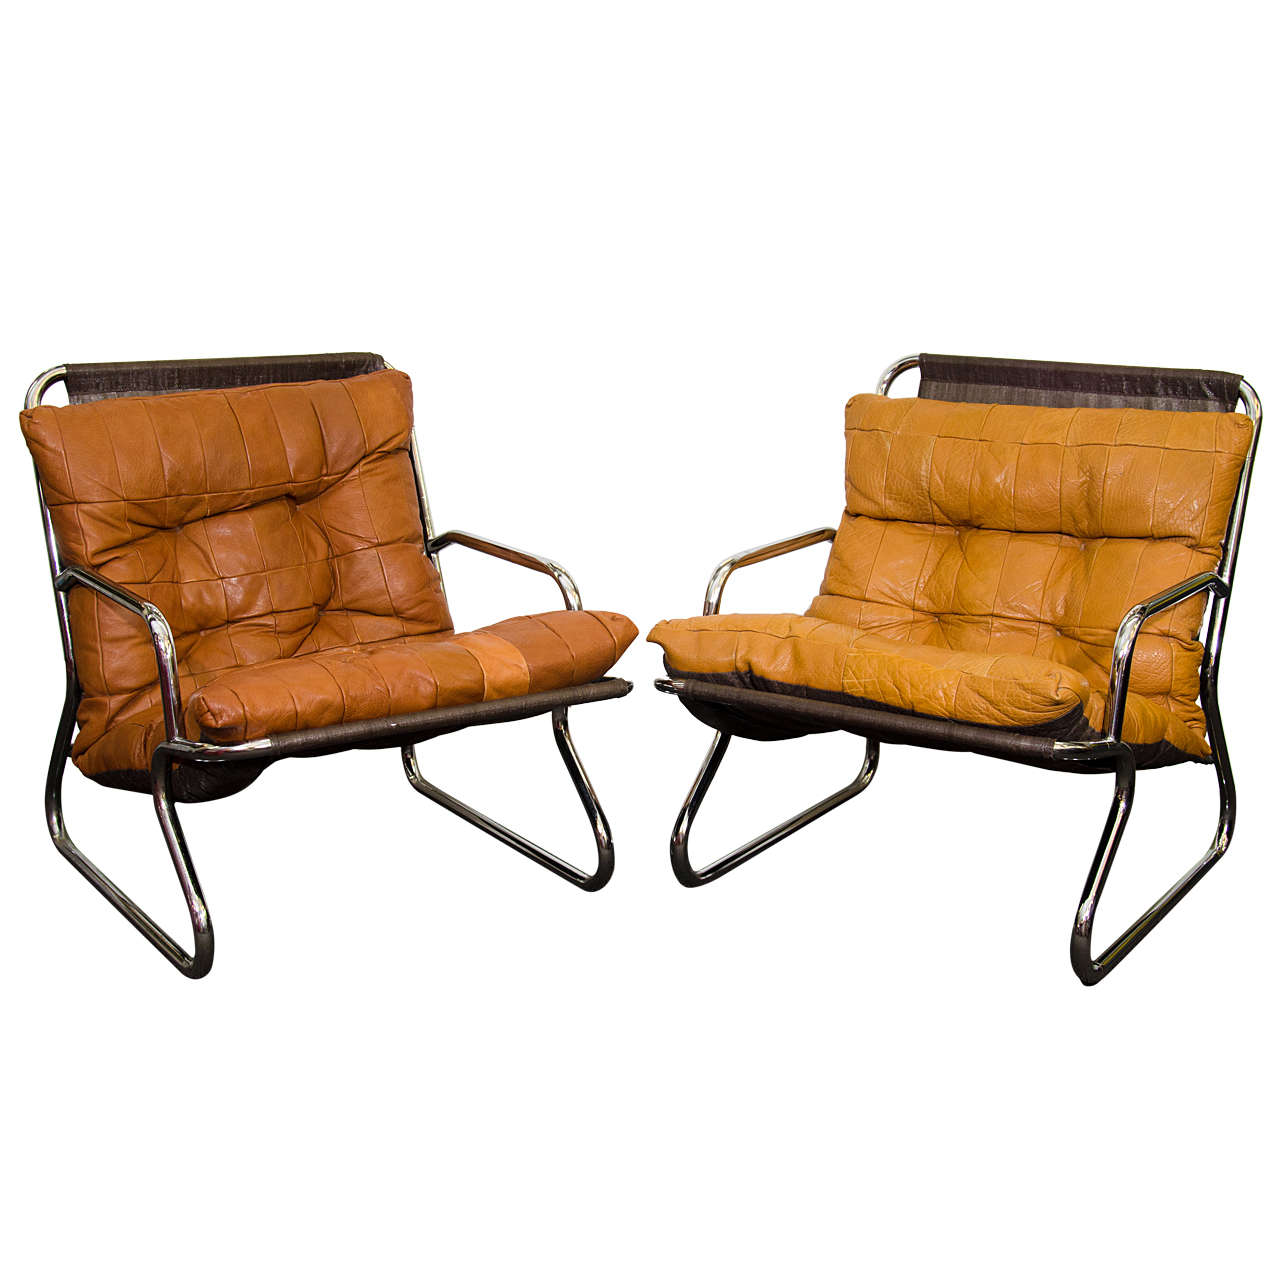 Danish Modern Set Of Two Tubular Chrome And Leather Lounge Chairs At 1stdibs